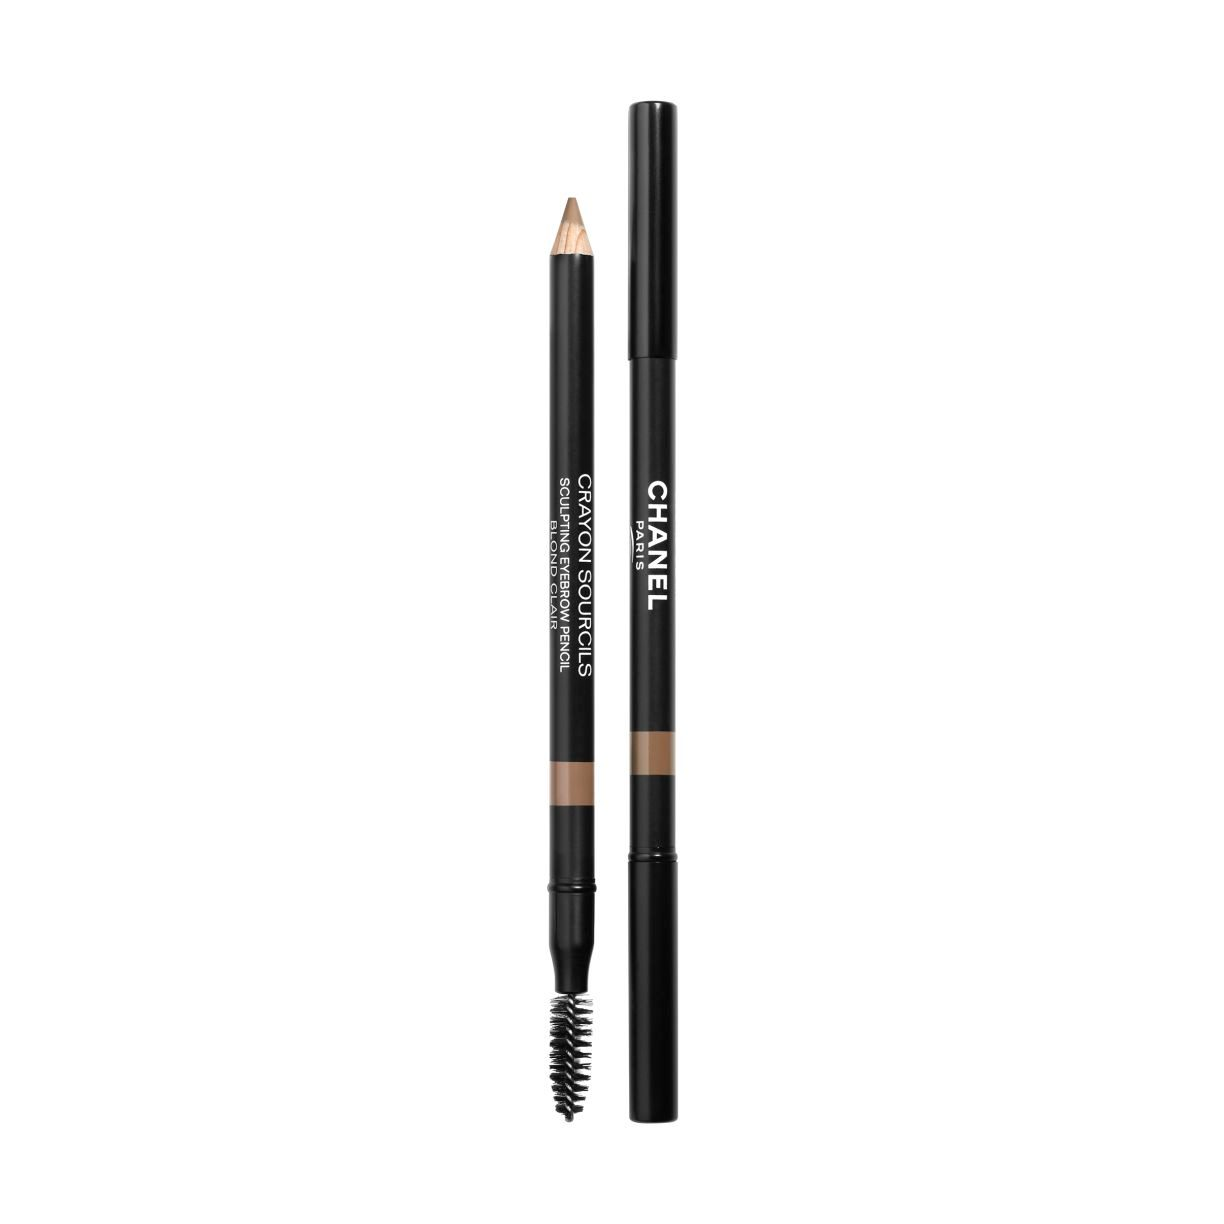 CRAYON SOURCILS VORMEND WENKBRAUWPOTLOOD 10 - BLOND CLAIR